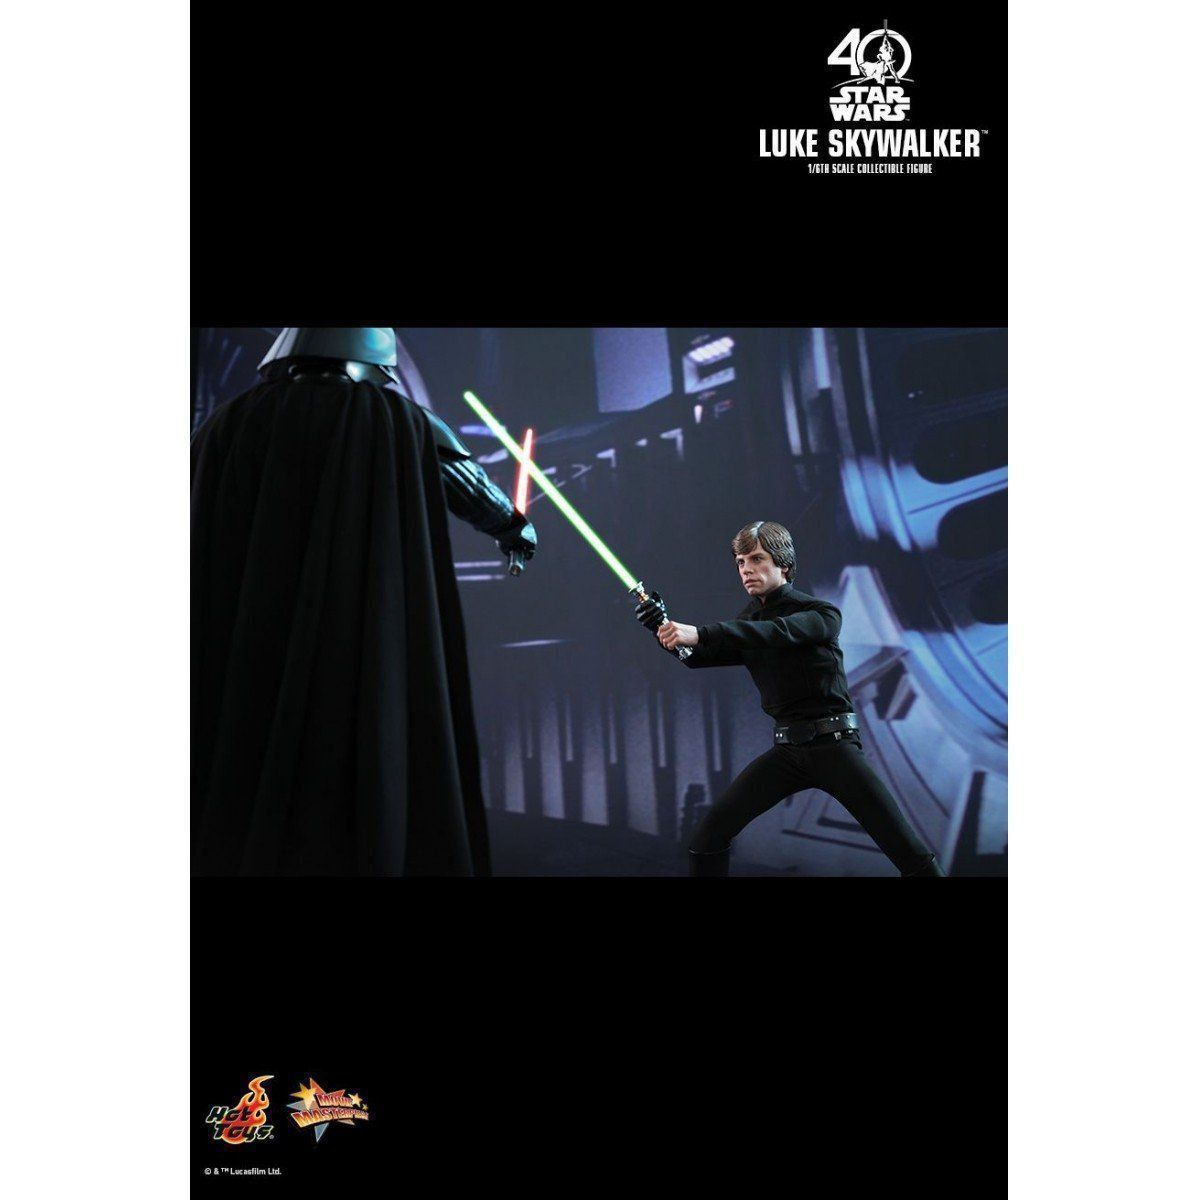 PRÉ VENDA: Boneco Luke Skywalker: Star Wars: O Retorno de Jedi Escala 1/6 - Hot Toys